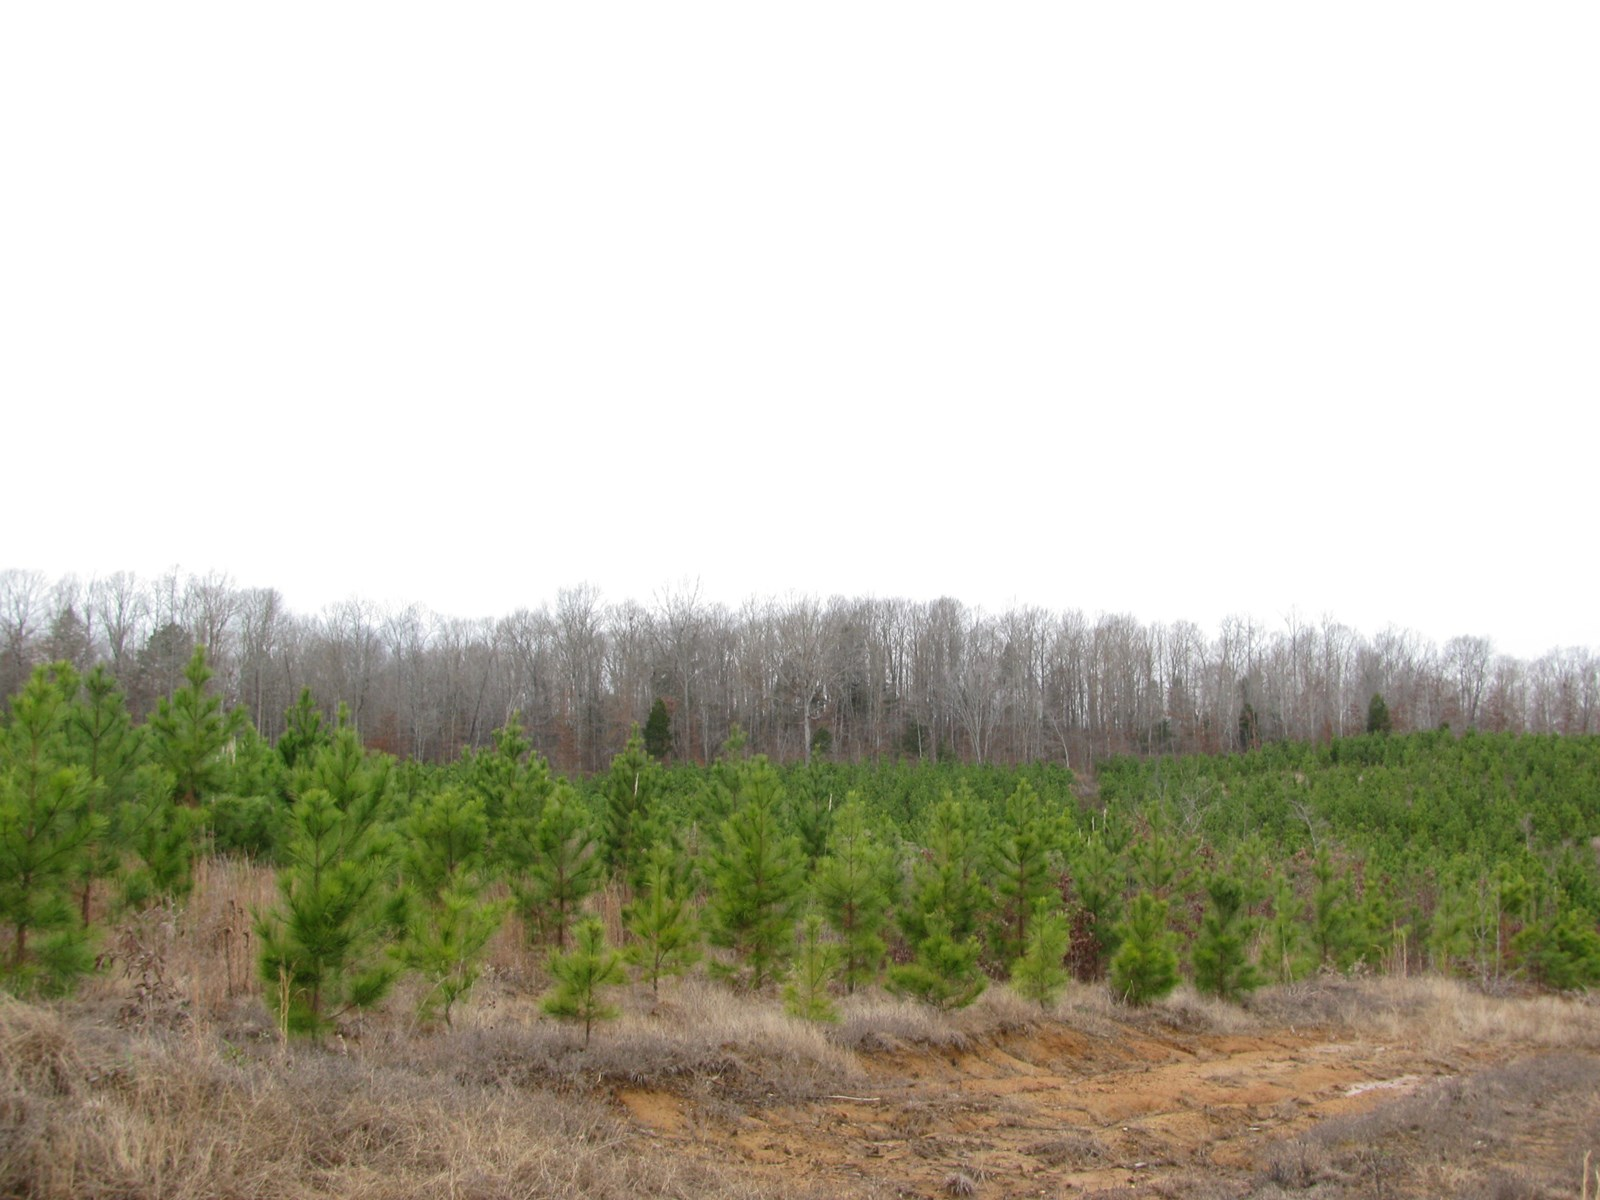 LAND IN TN FOR SALE W/CREEK, FIELD, HUNTING, OWNER FINANCING